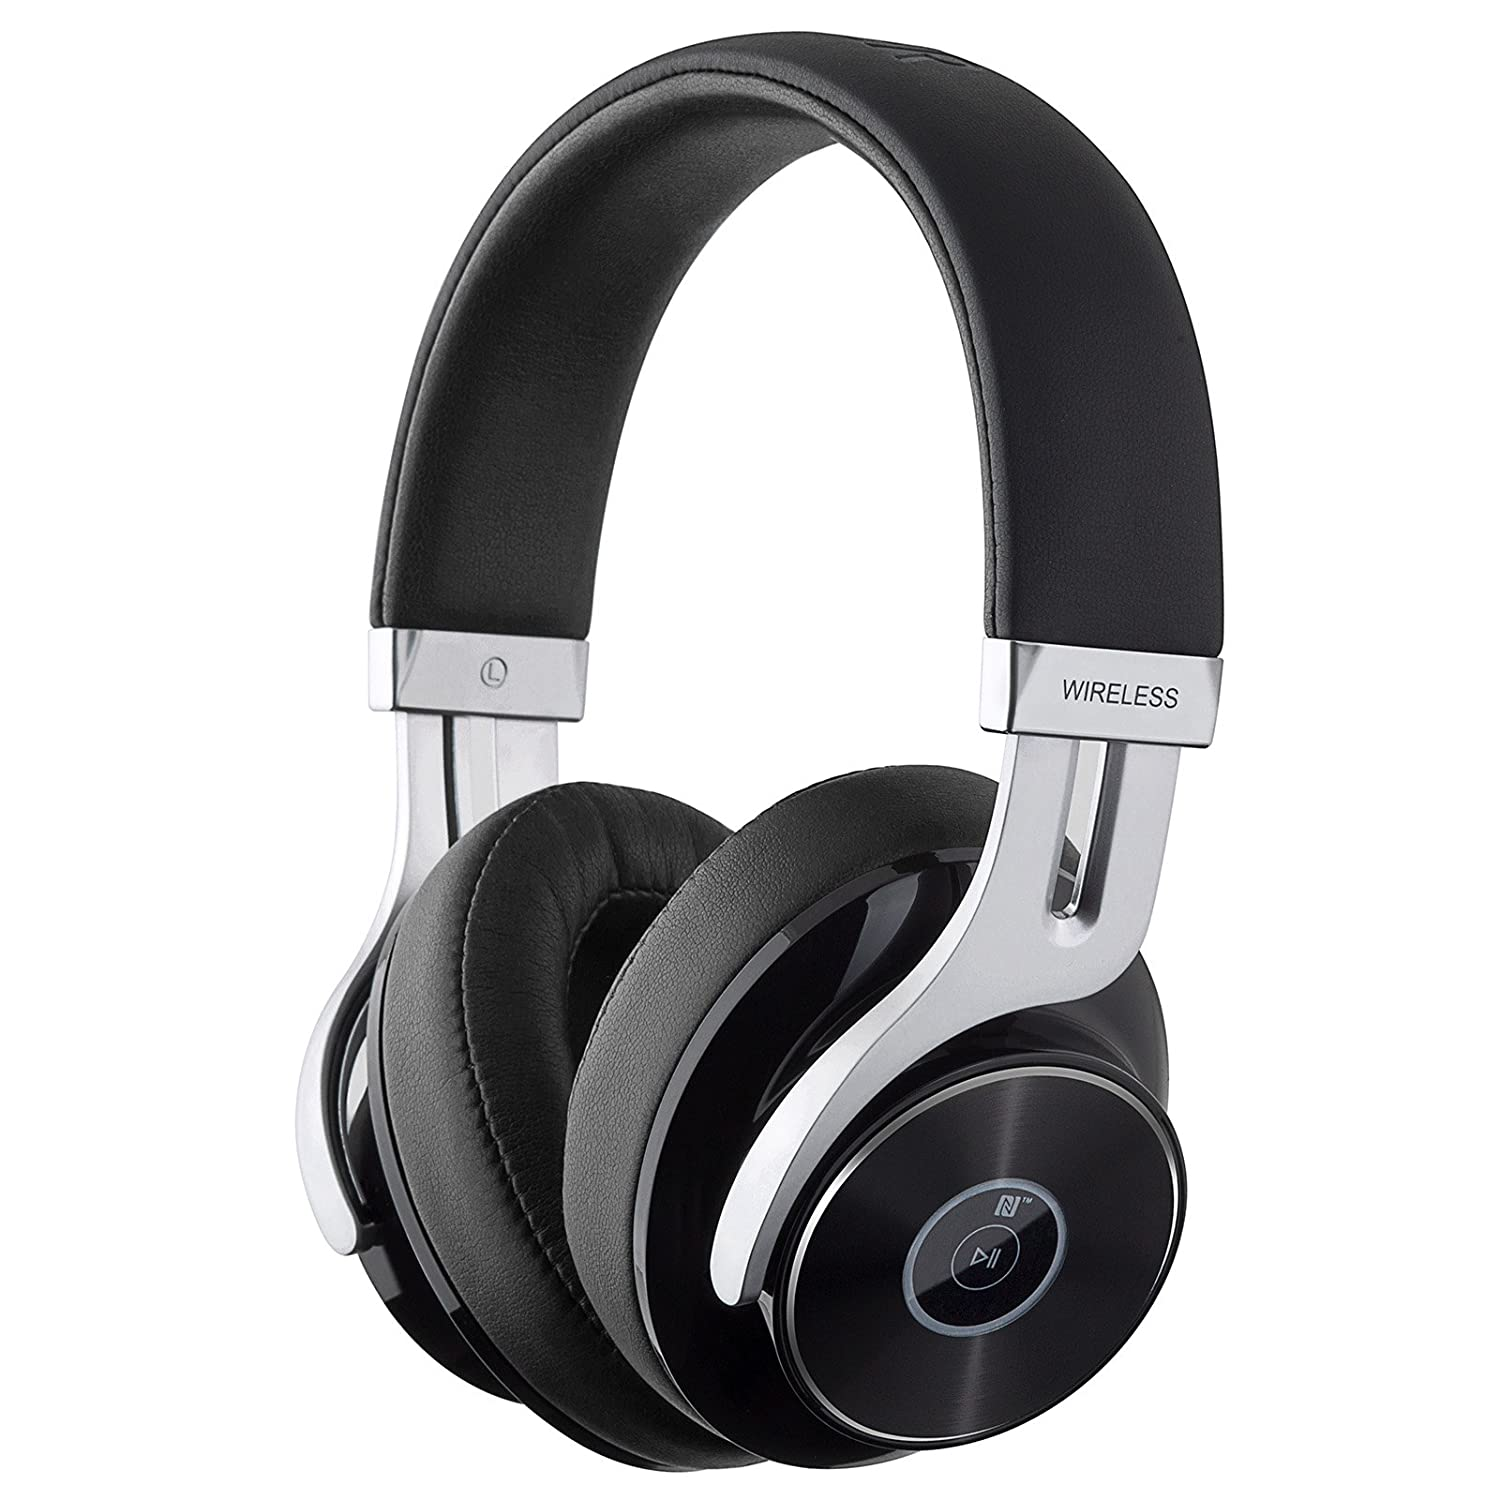 Edifier W855BT Bluetooth Headphones - Over-Ear Stereo Wireless Headphone with Microphone and Volume Control - Black